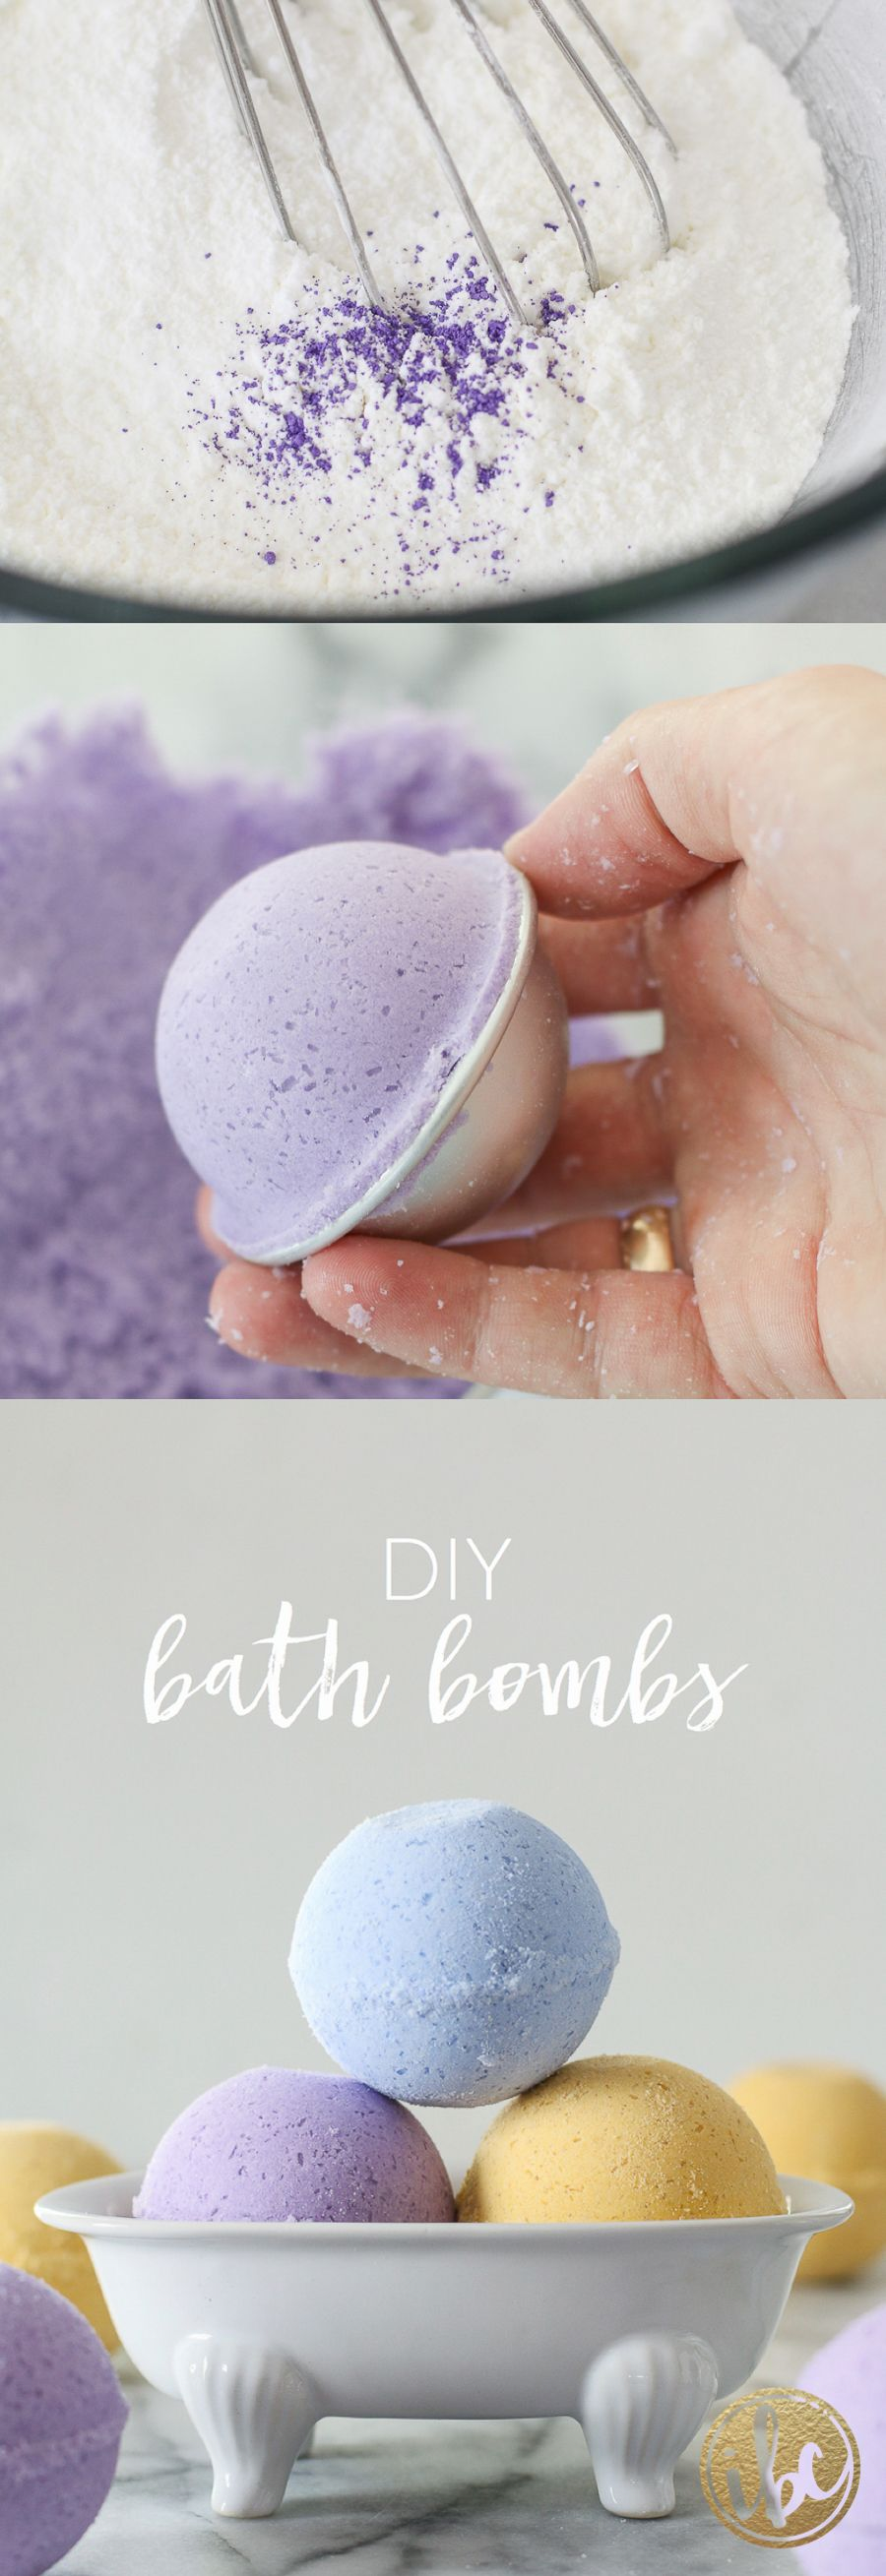 Best 25+ Diy christmas gifts ideas on Pinterest | Christmas crafts ...